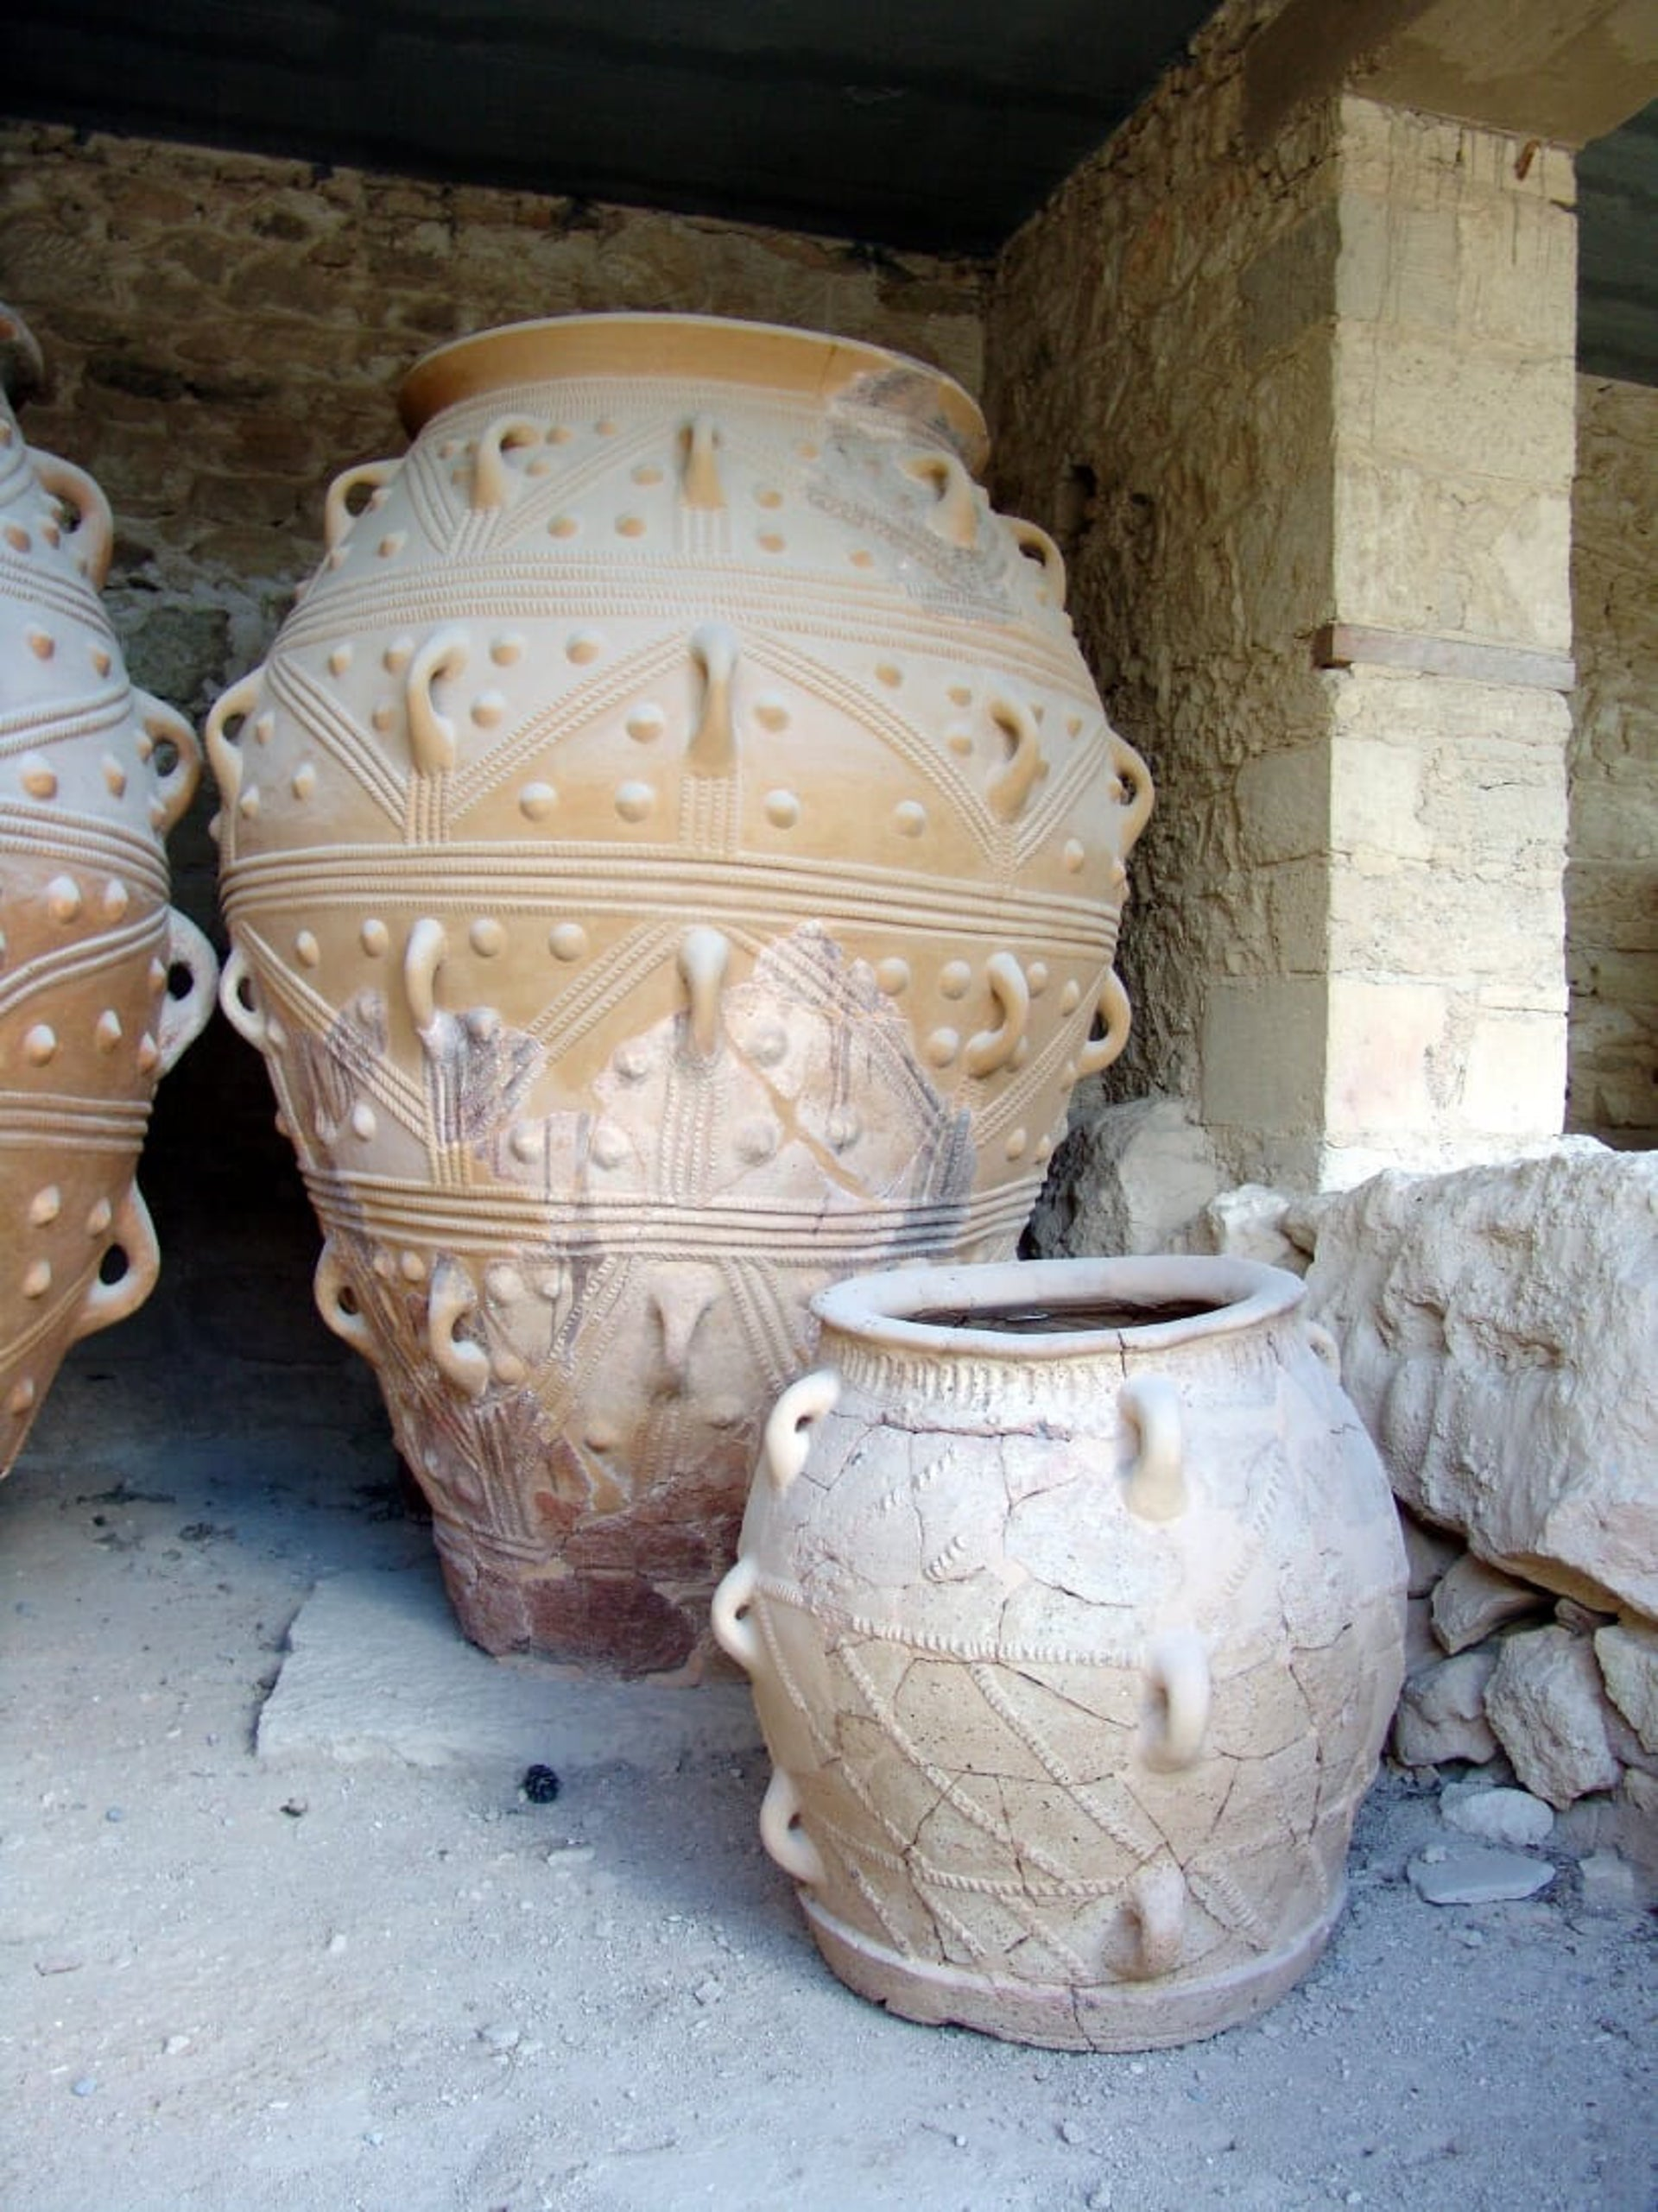 Elaborate pithoi (storage jars) in Knossos